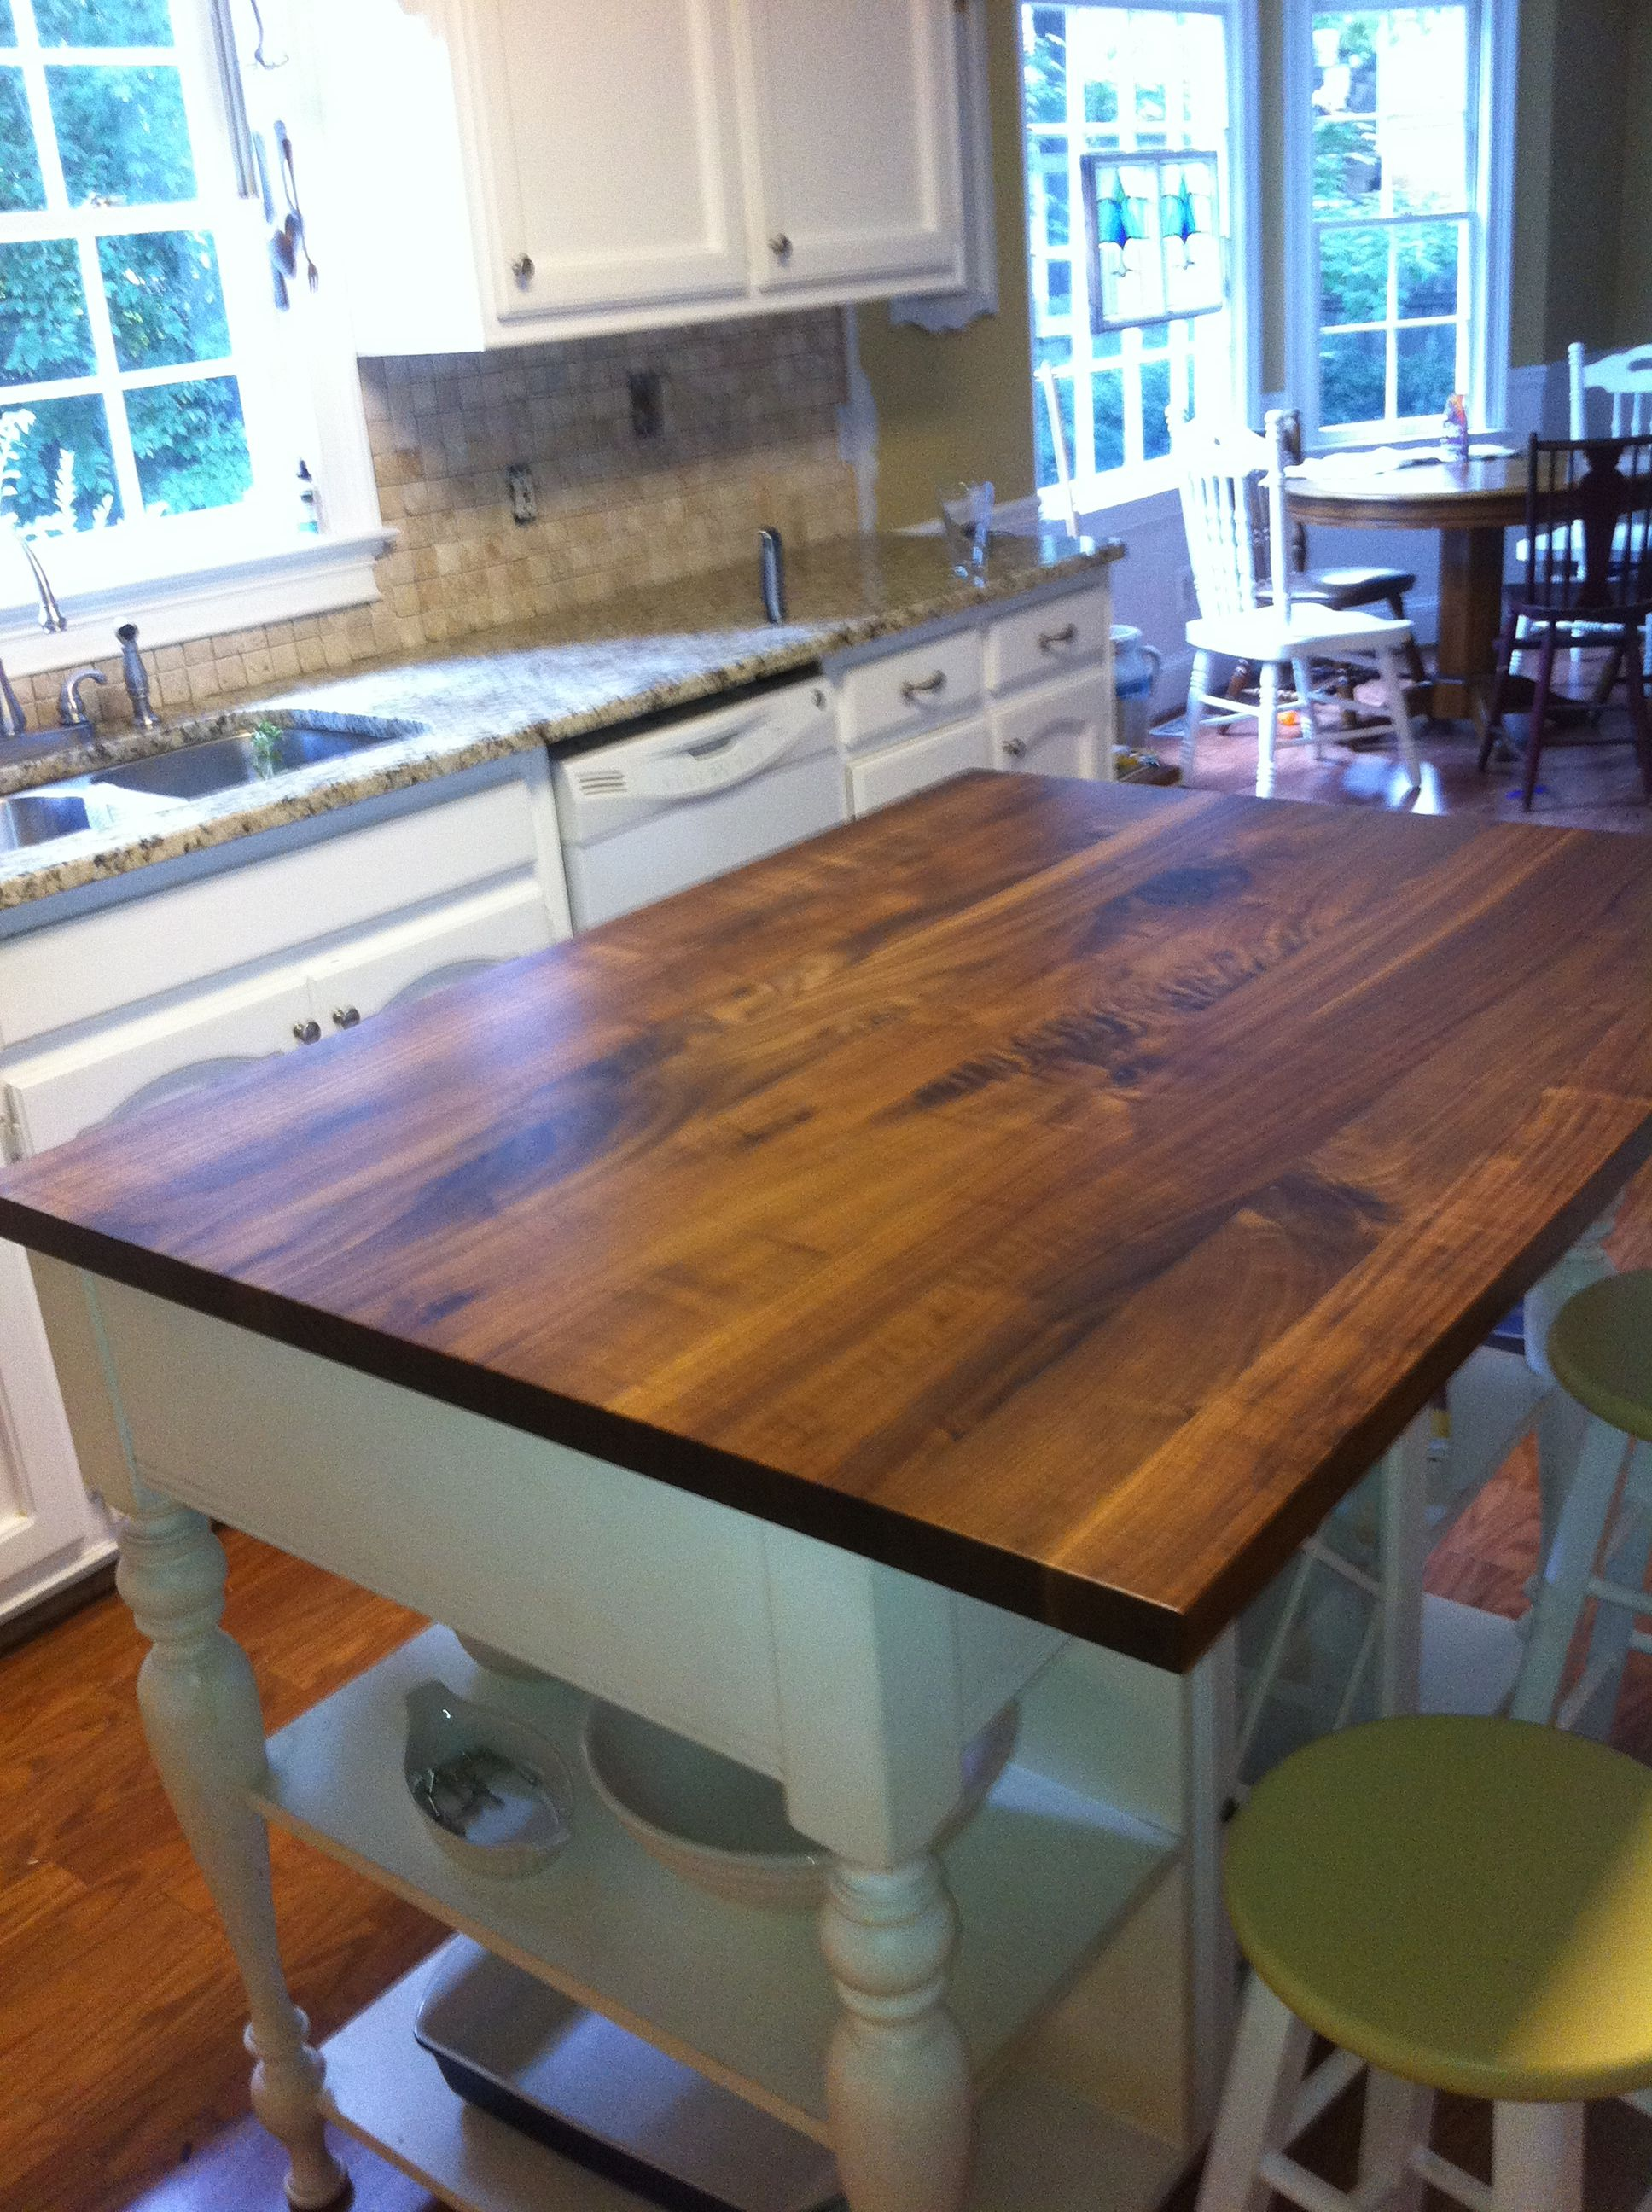 Remarkable Rustic Black Walnut Plank Style Wood Countertop Maybe A Download Free Architecture Designs Rallybritishbridgeorg